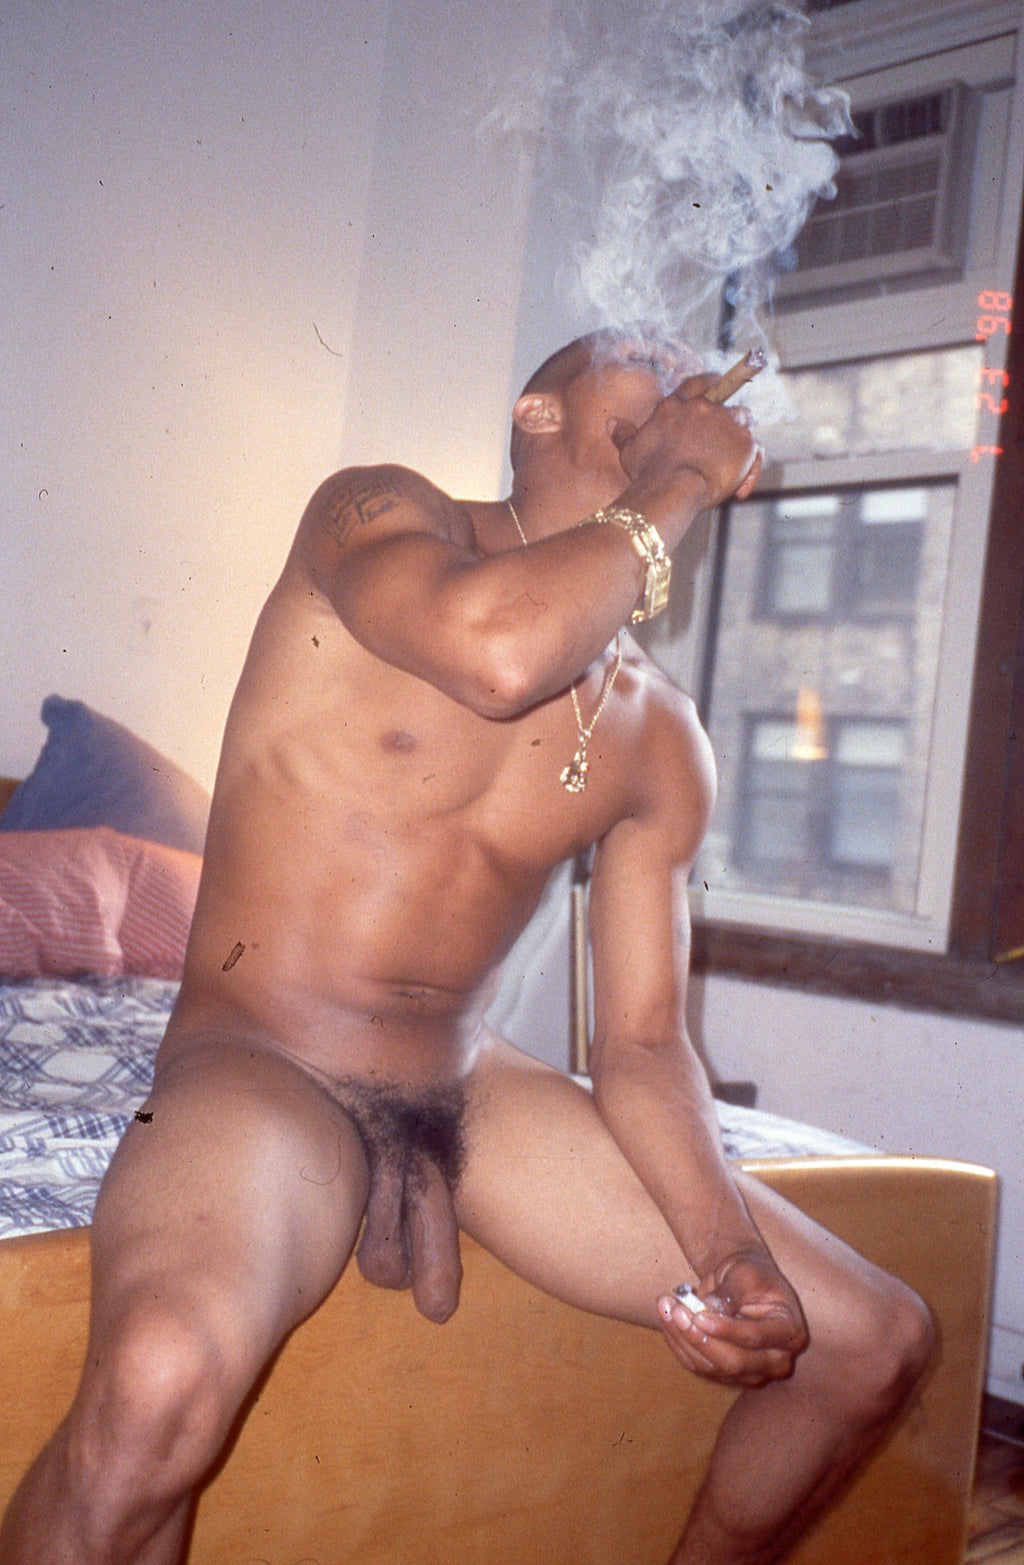 BRUCE LABRUCE, Tiger Tyson Smoking at Harmony's Apartment in Gramercy Park, 1999